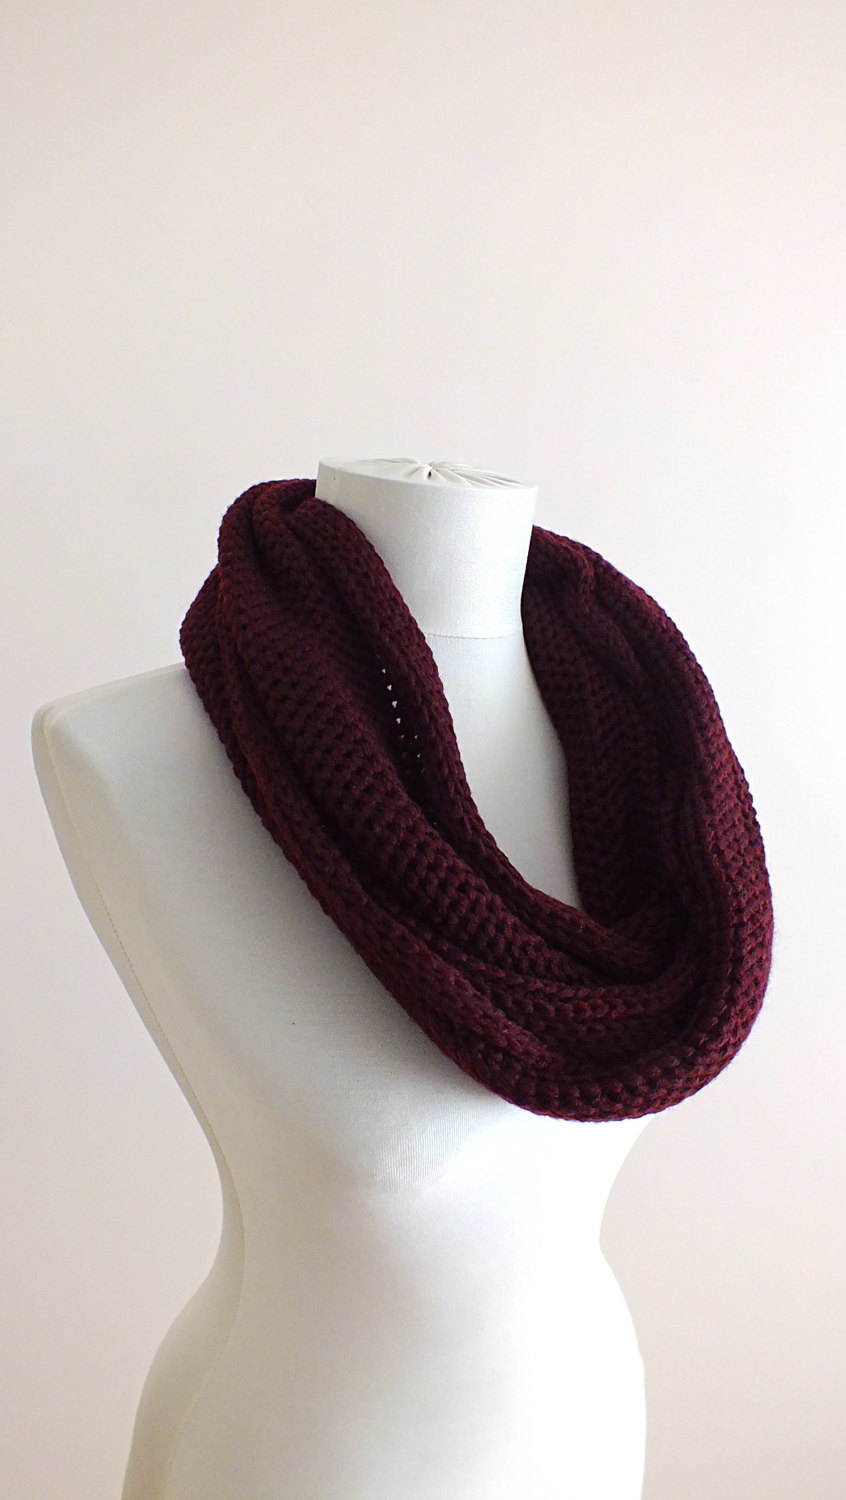 Chunky knit scarf maroon knit scarf infinity winter scarf unique wedding gift for her winter fashion accessories trending items